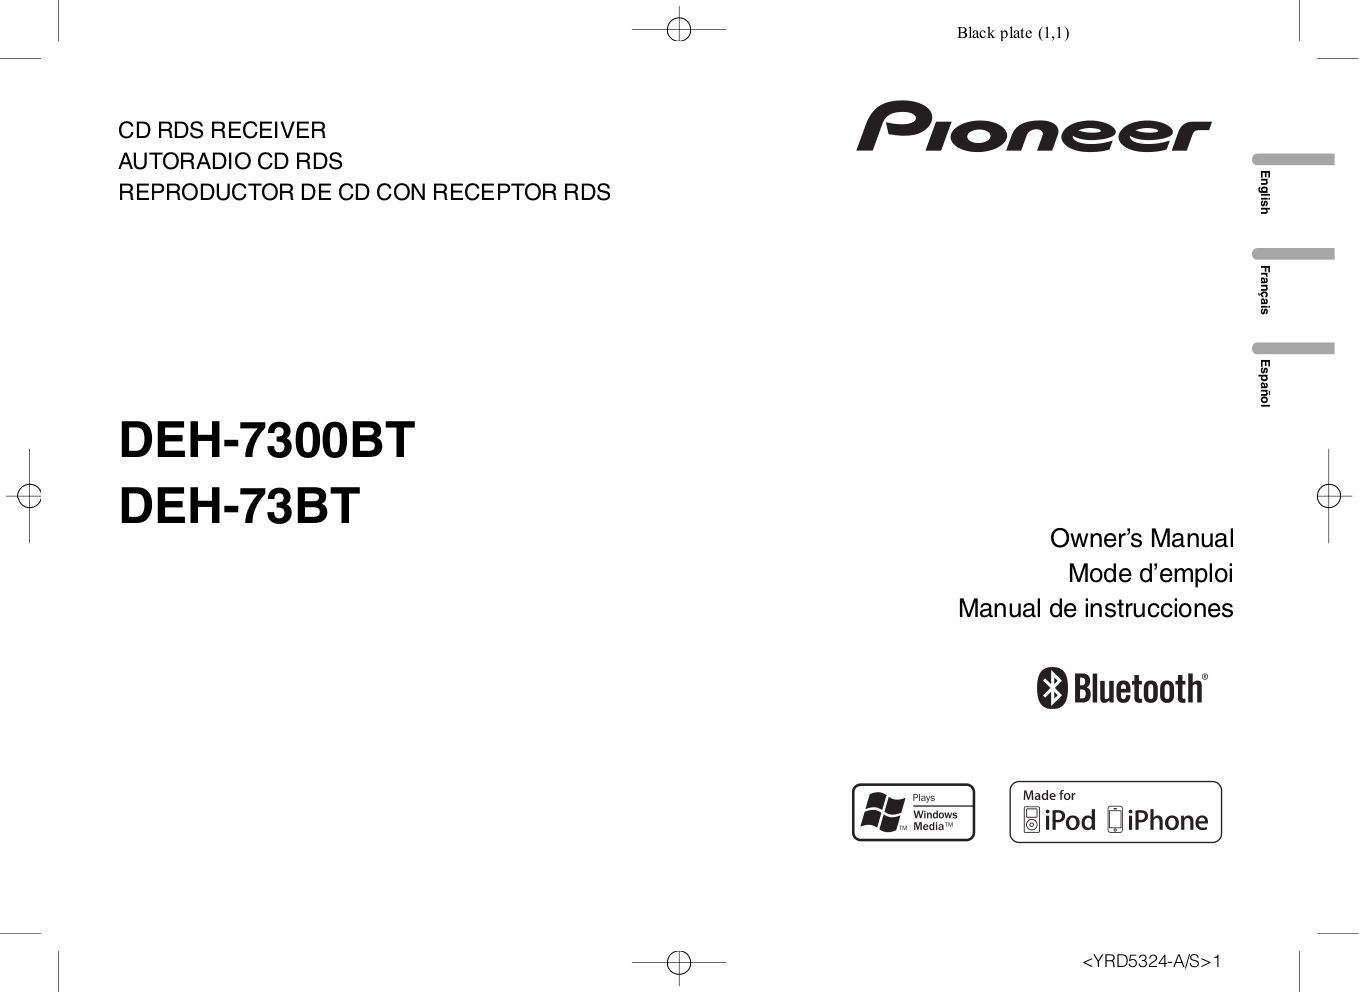 Pioneer Deh7300bt Manual - User Guide Manual That Easy-to-read •